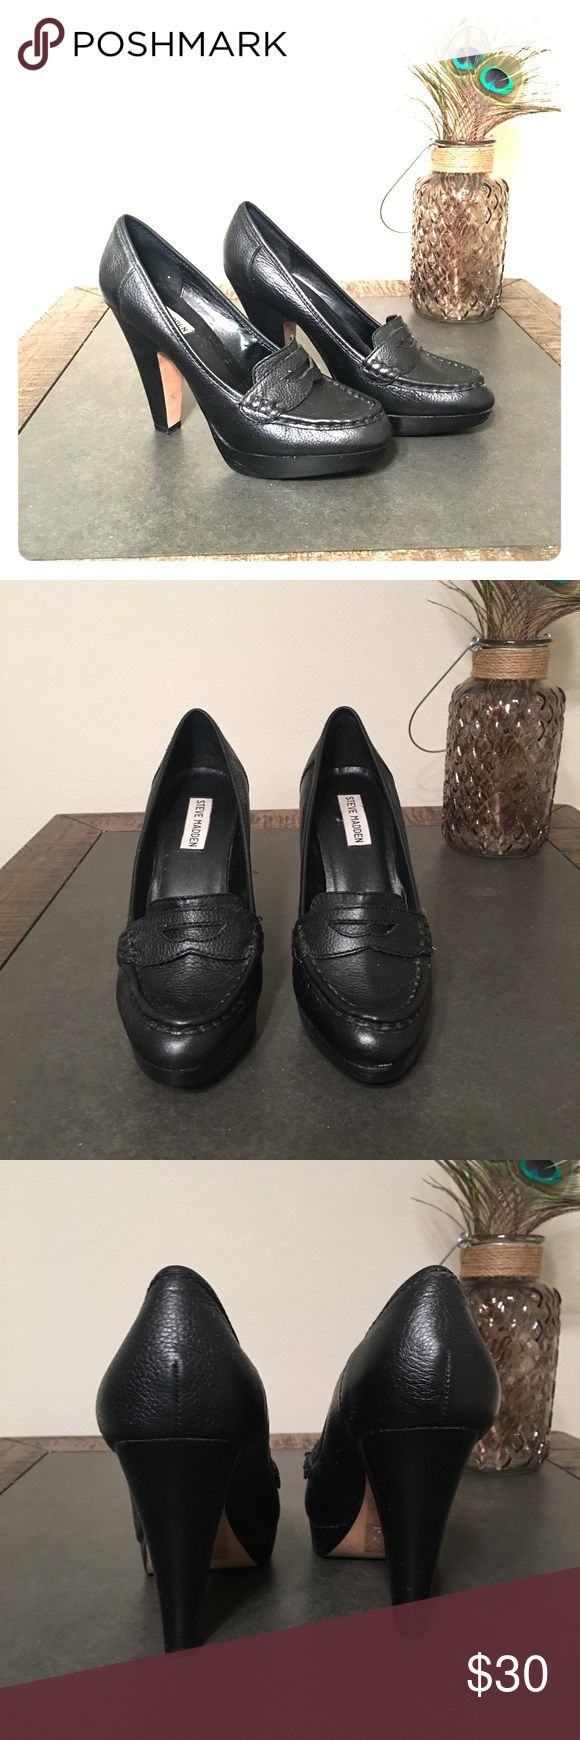 "Black heeled Steve Madden Loafers 4 1/2"" heeled Steve Madden Loafers. Gently worn. Super cute with jeans, a skirt or pants. Steve Madden Shoes Platforms"